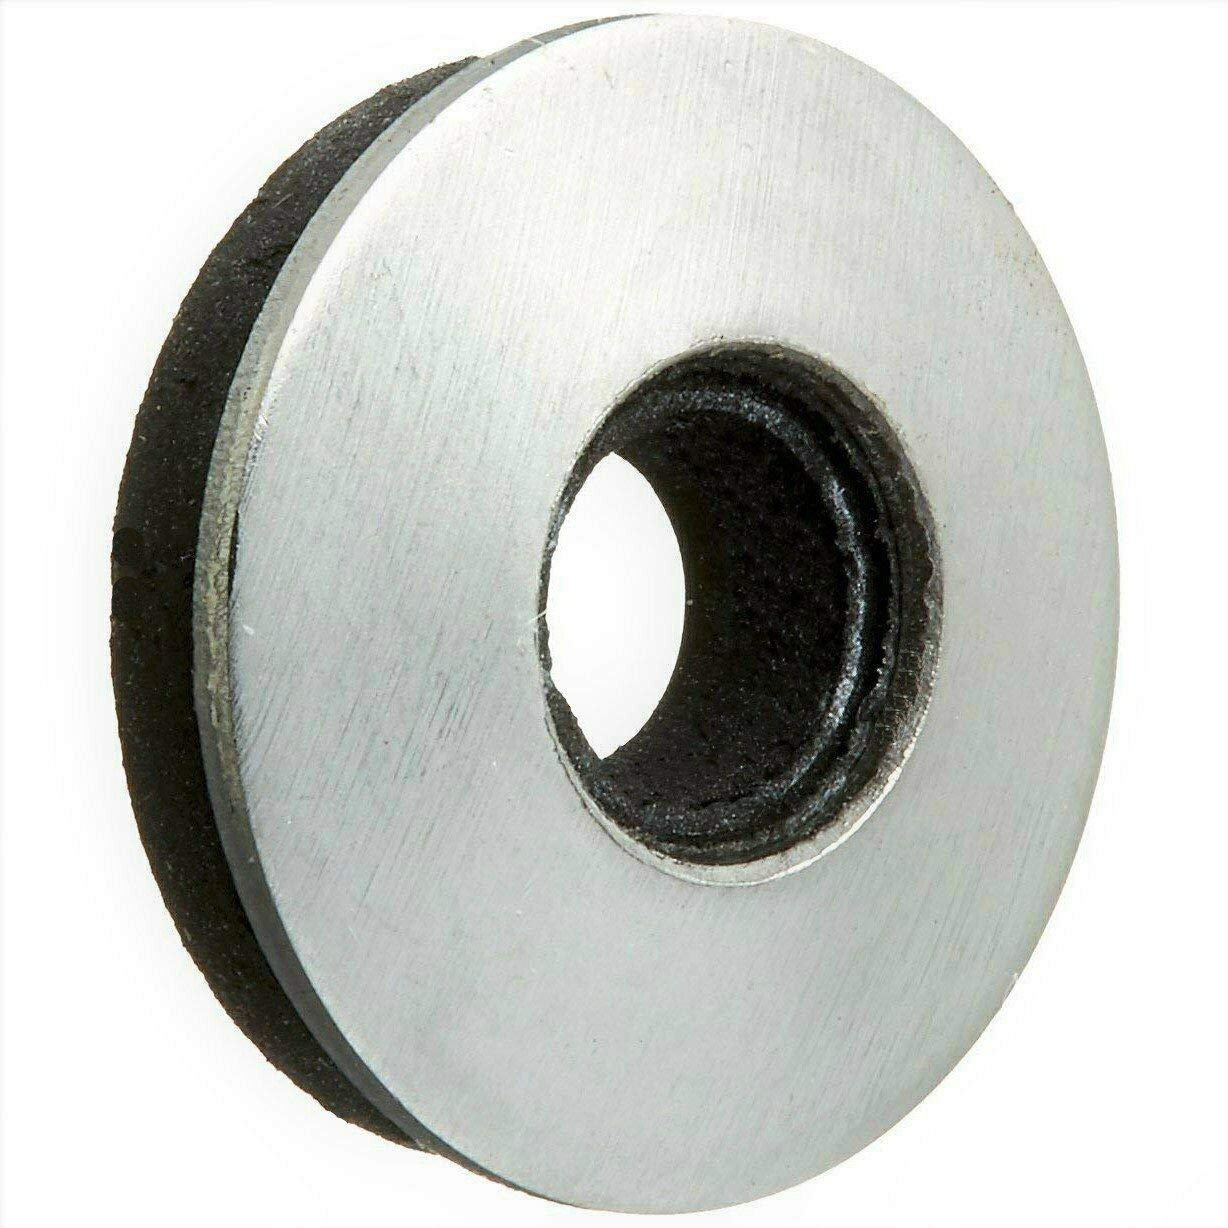 1000 Qty #10 Stainless Steel EPDM Bonded Sealing Neoprene Rubber Washers (BCP863 - Durable and Sturdy, Good Holding Power in Different Materials by JumpingBolt